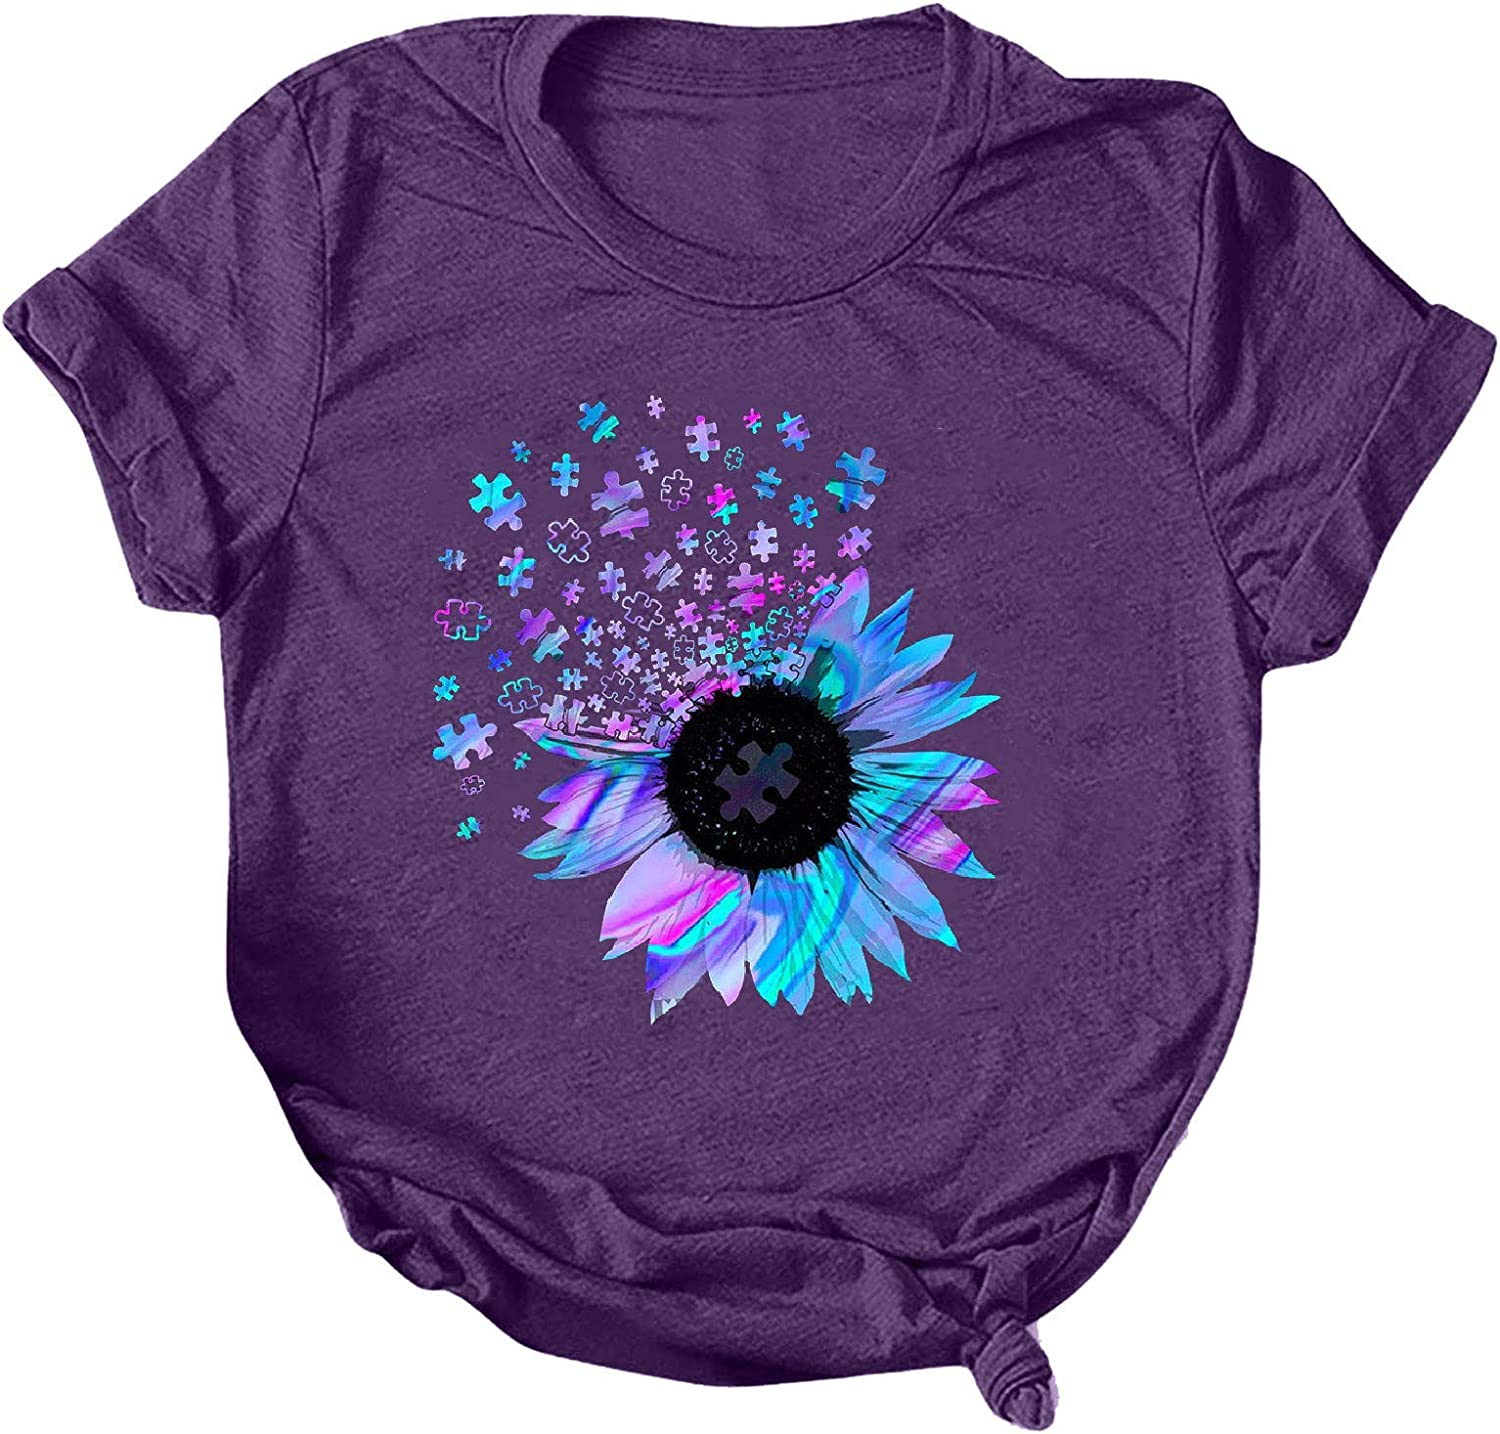 Womens Tops and Blouses Clearance Womens Valentines Day Shirts Plaid Love Heart Graphic T Shirts Leopard Print Short Sleeve Tee Top Purple